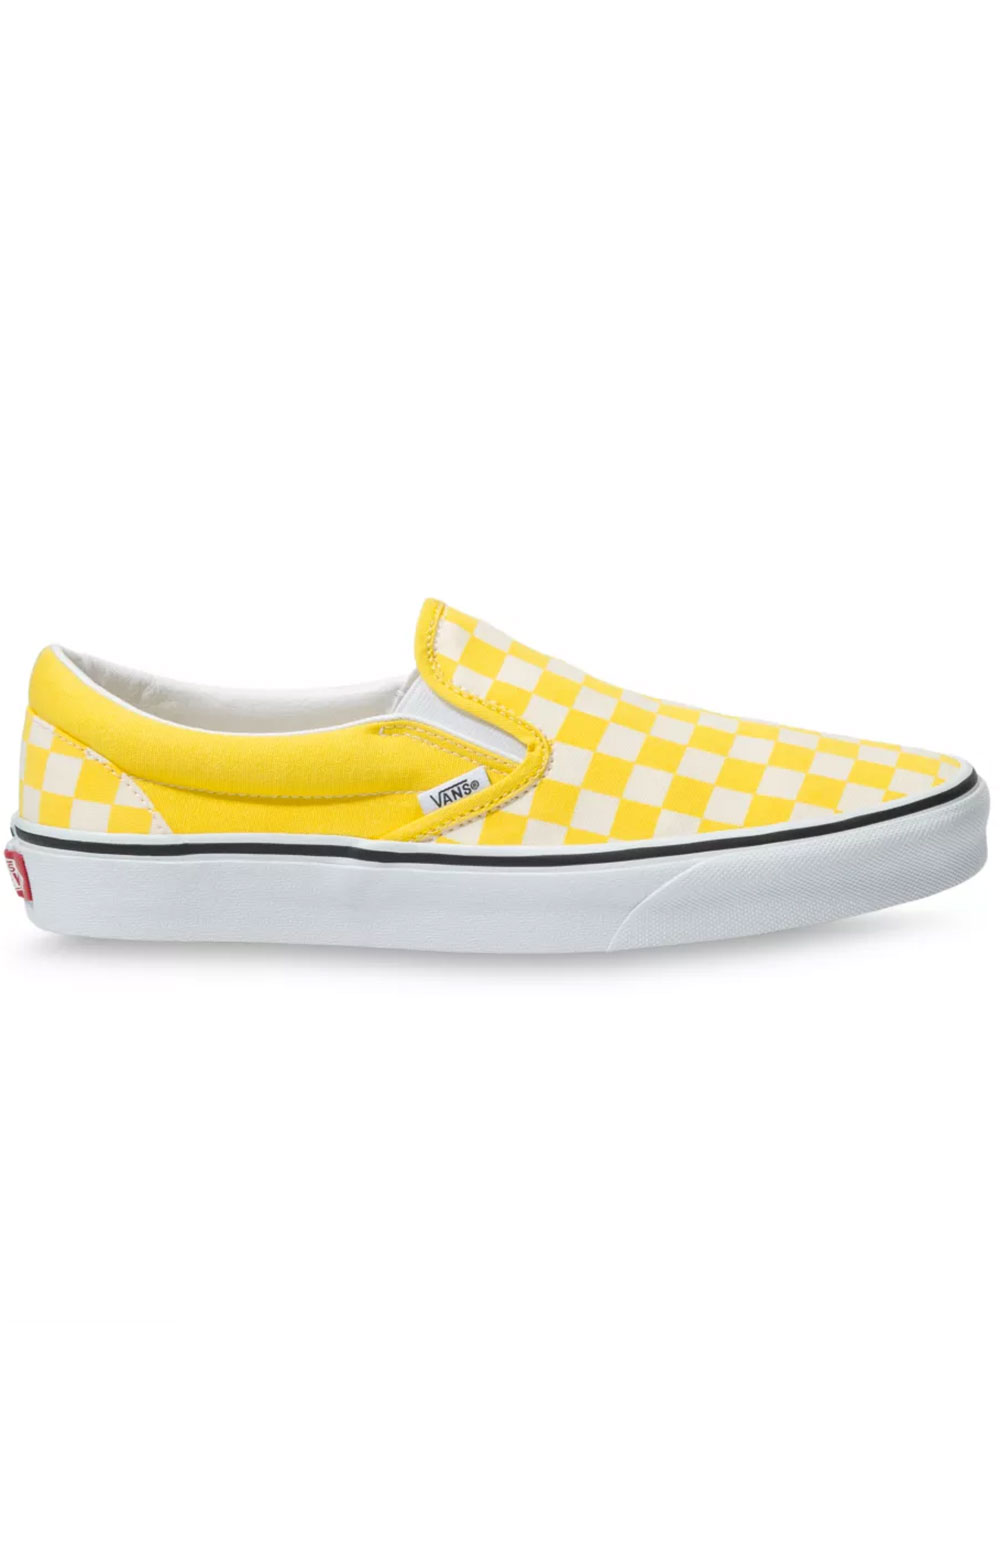 (3TB42Z) Checkerboard Classic Slip-On Shoes - Cyber Yellow